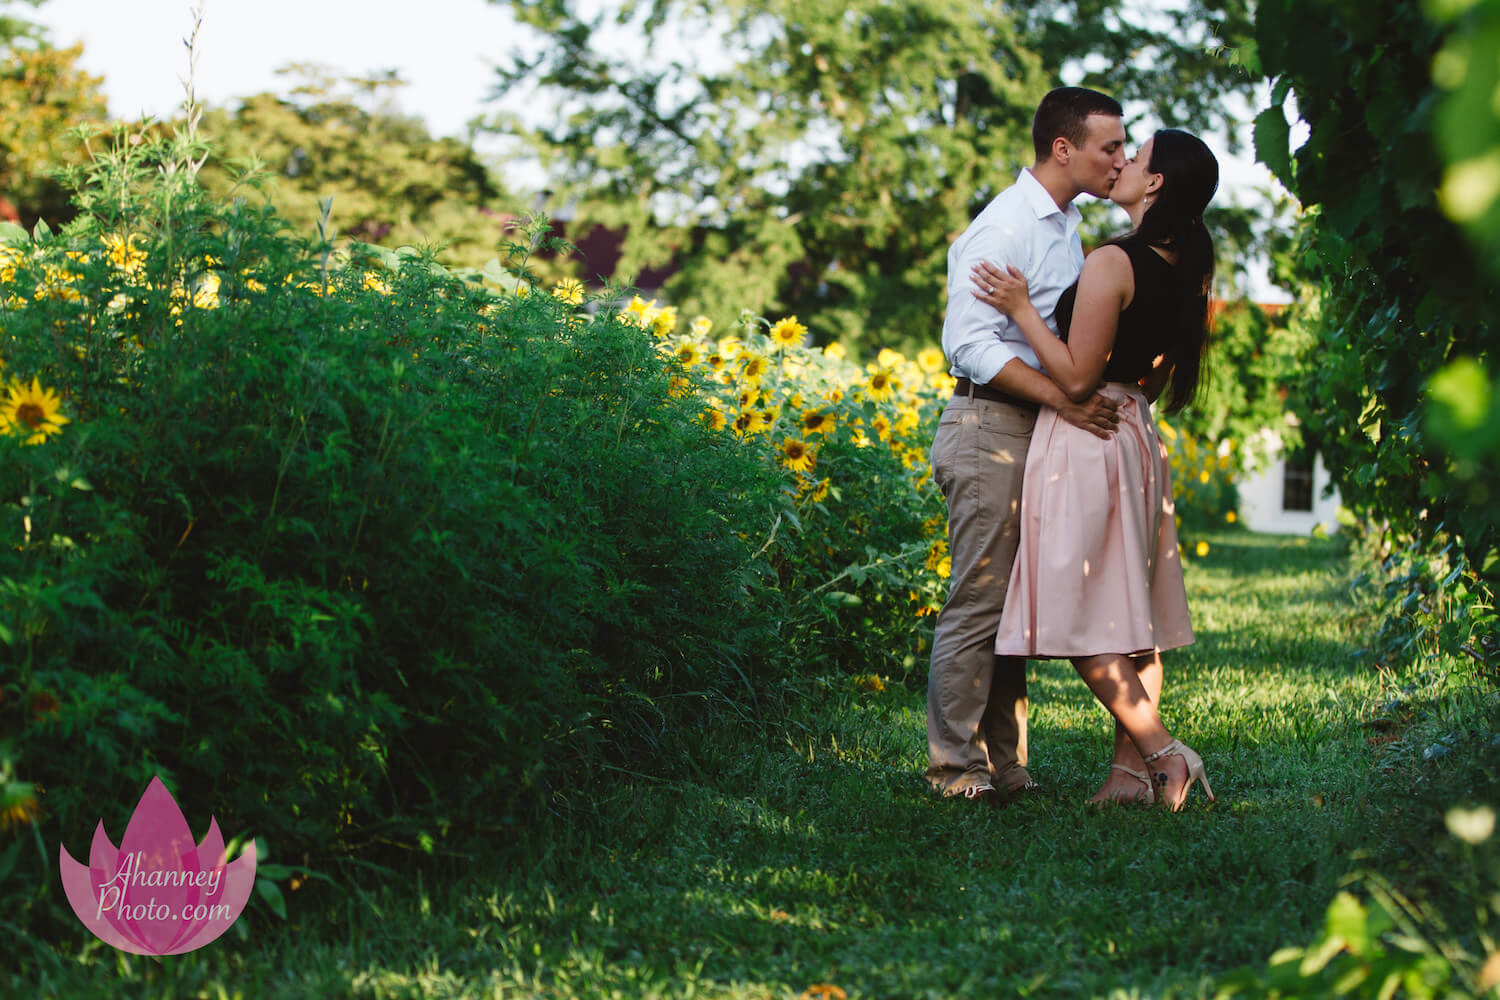 Engagement-Photography-Kissing_ahanneyphoto_domrach (1).jpeg